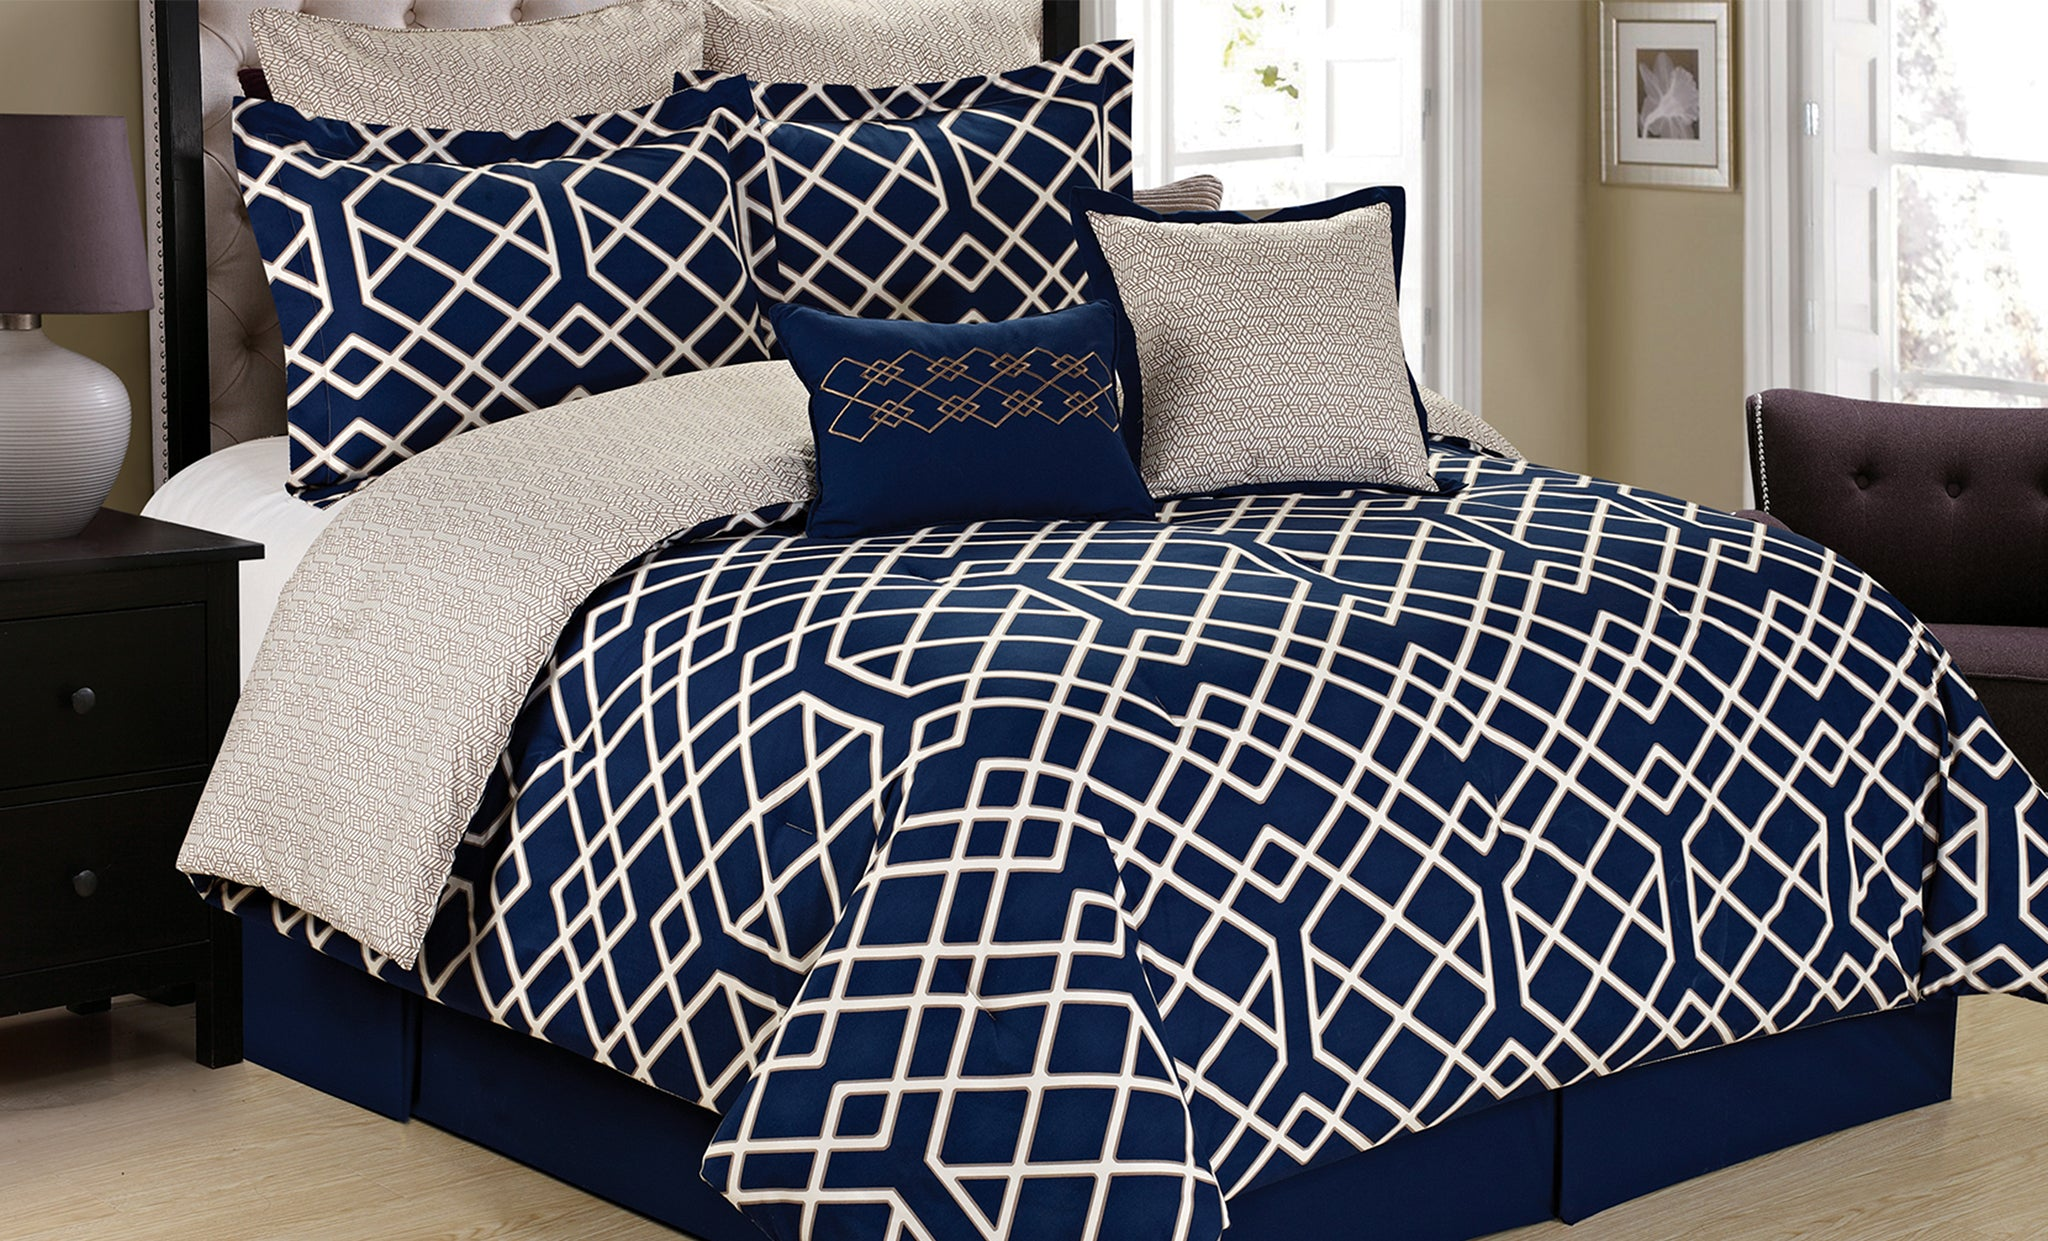 Reversible Comforter Set (6- or 8-Piece)